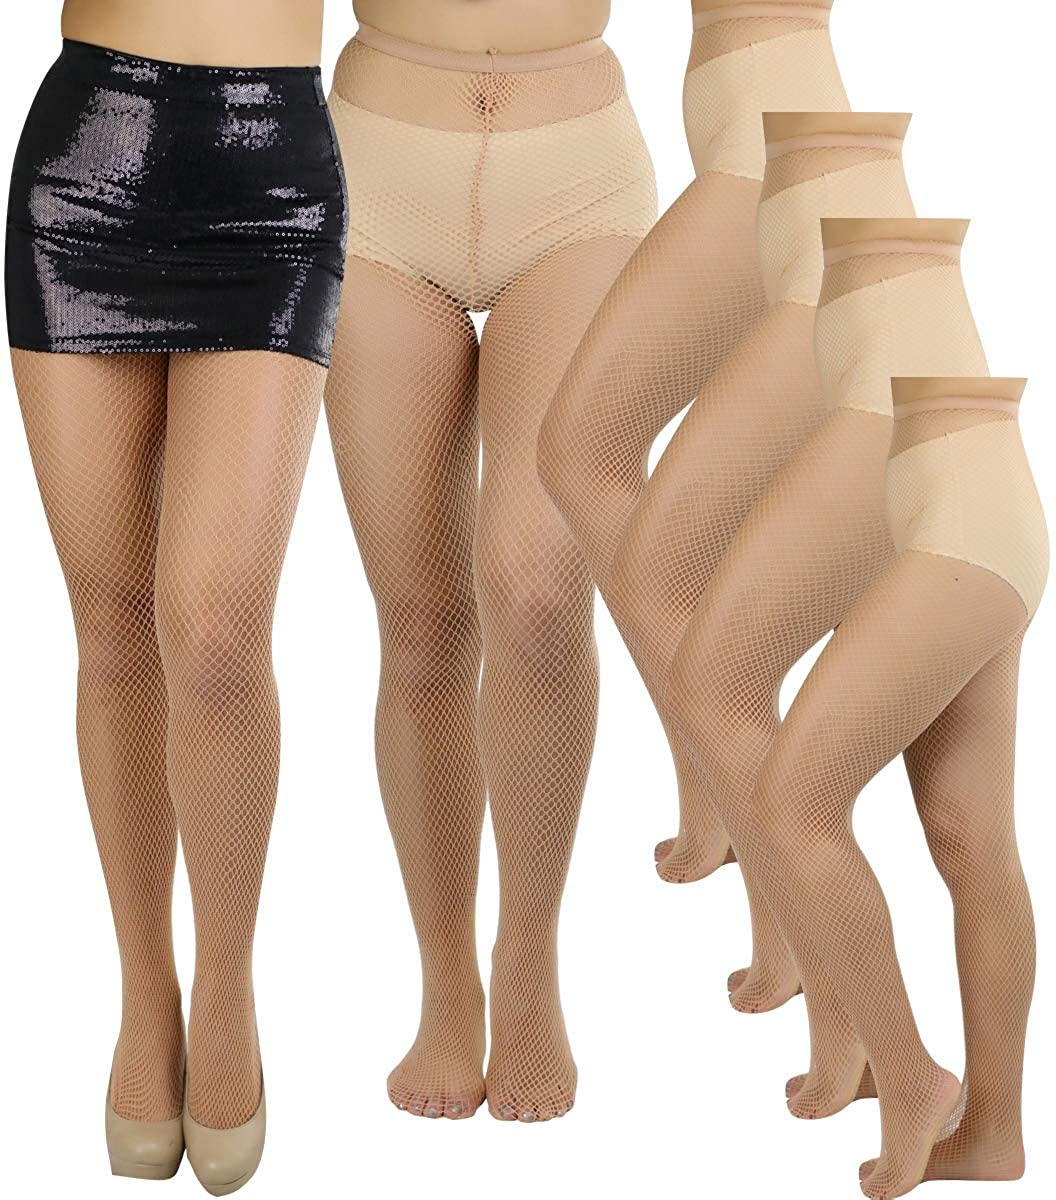 9d58645717a19e ToBeInStyle Womens Pack of 6 Vibrant Color Nylon Fishnet Pantyhose at  Amazon Women's Clothing store: